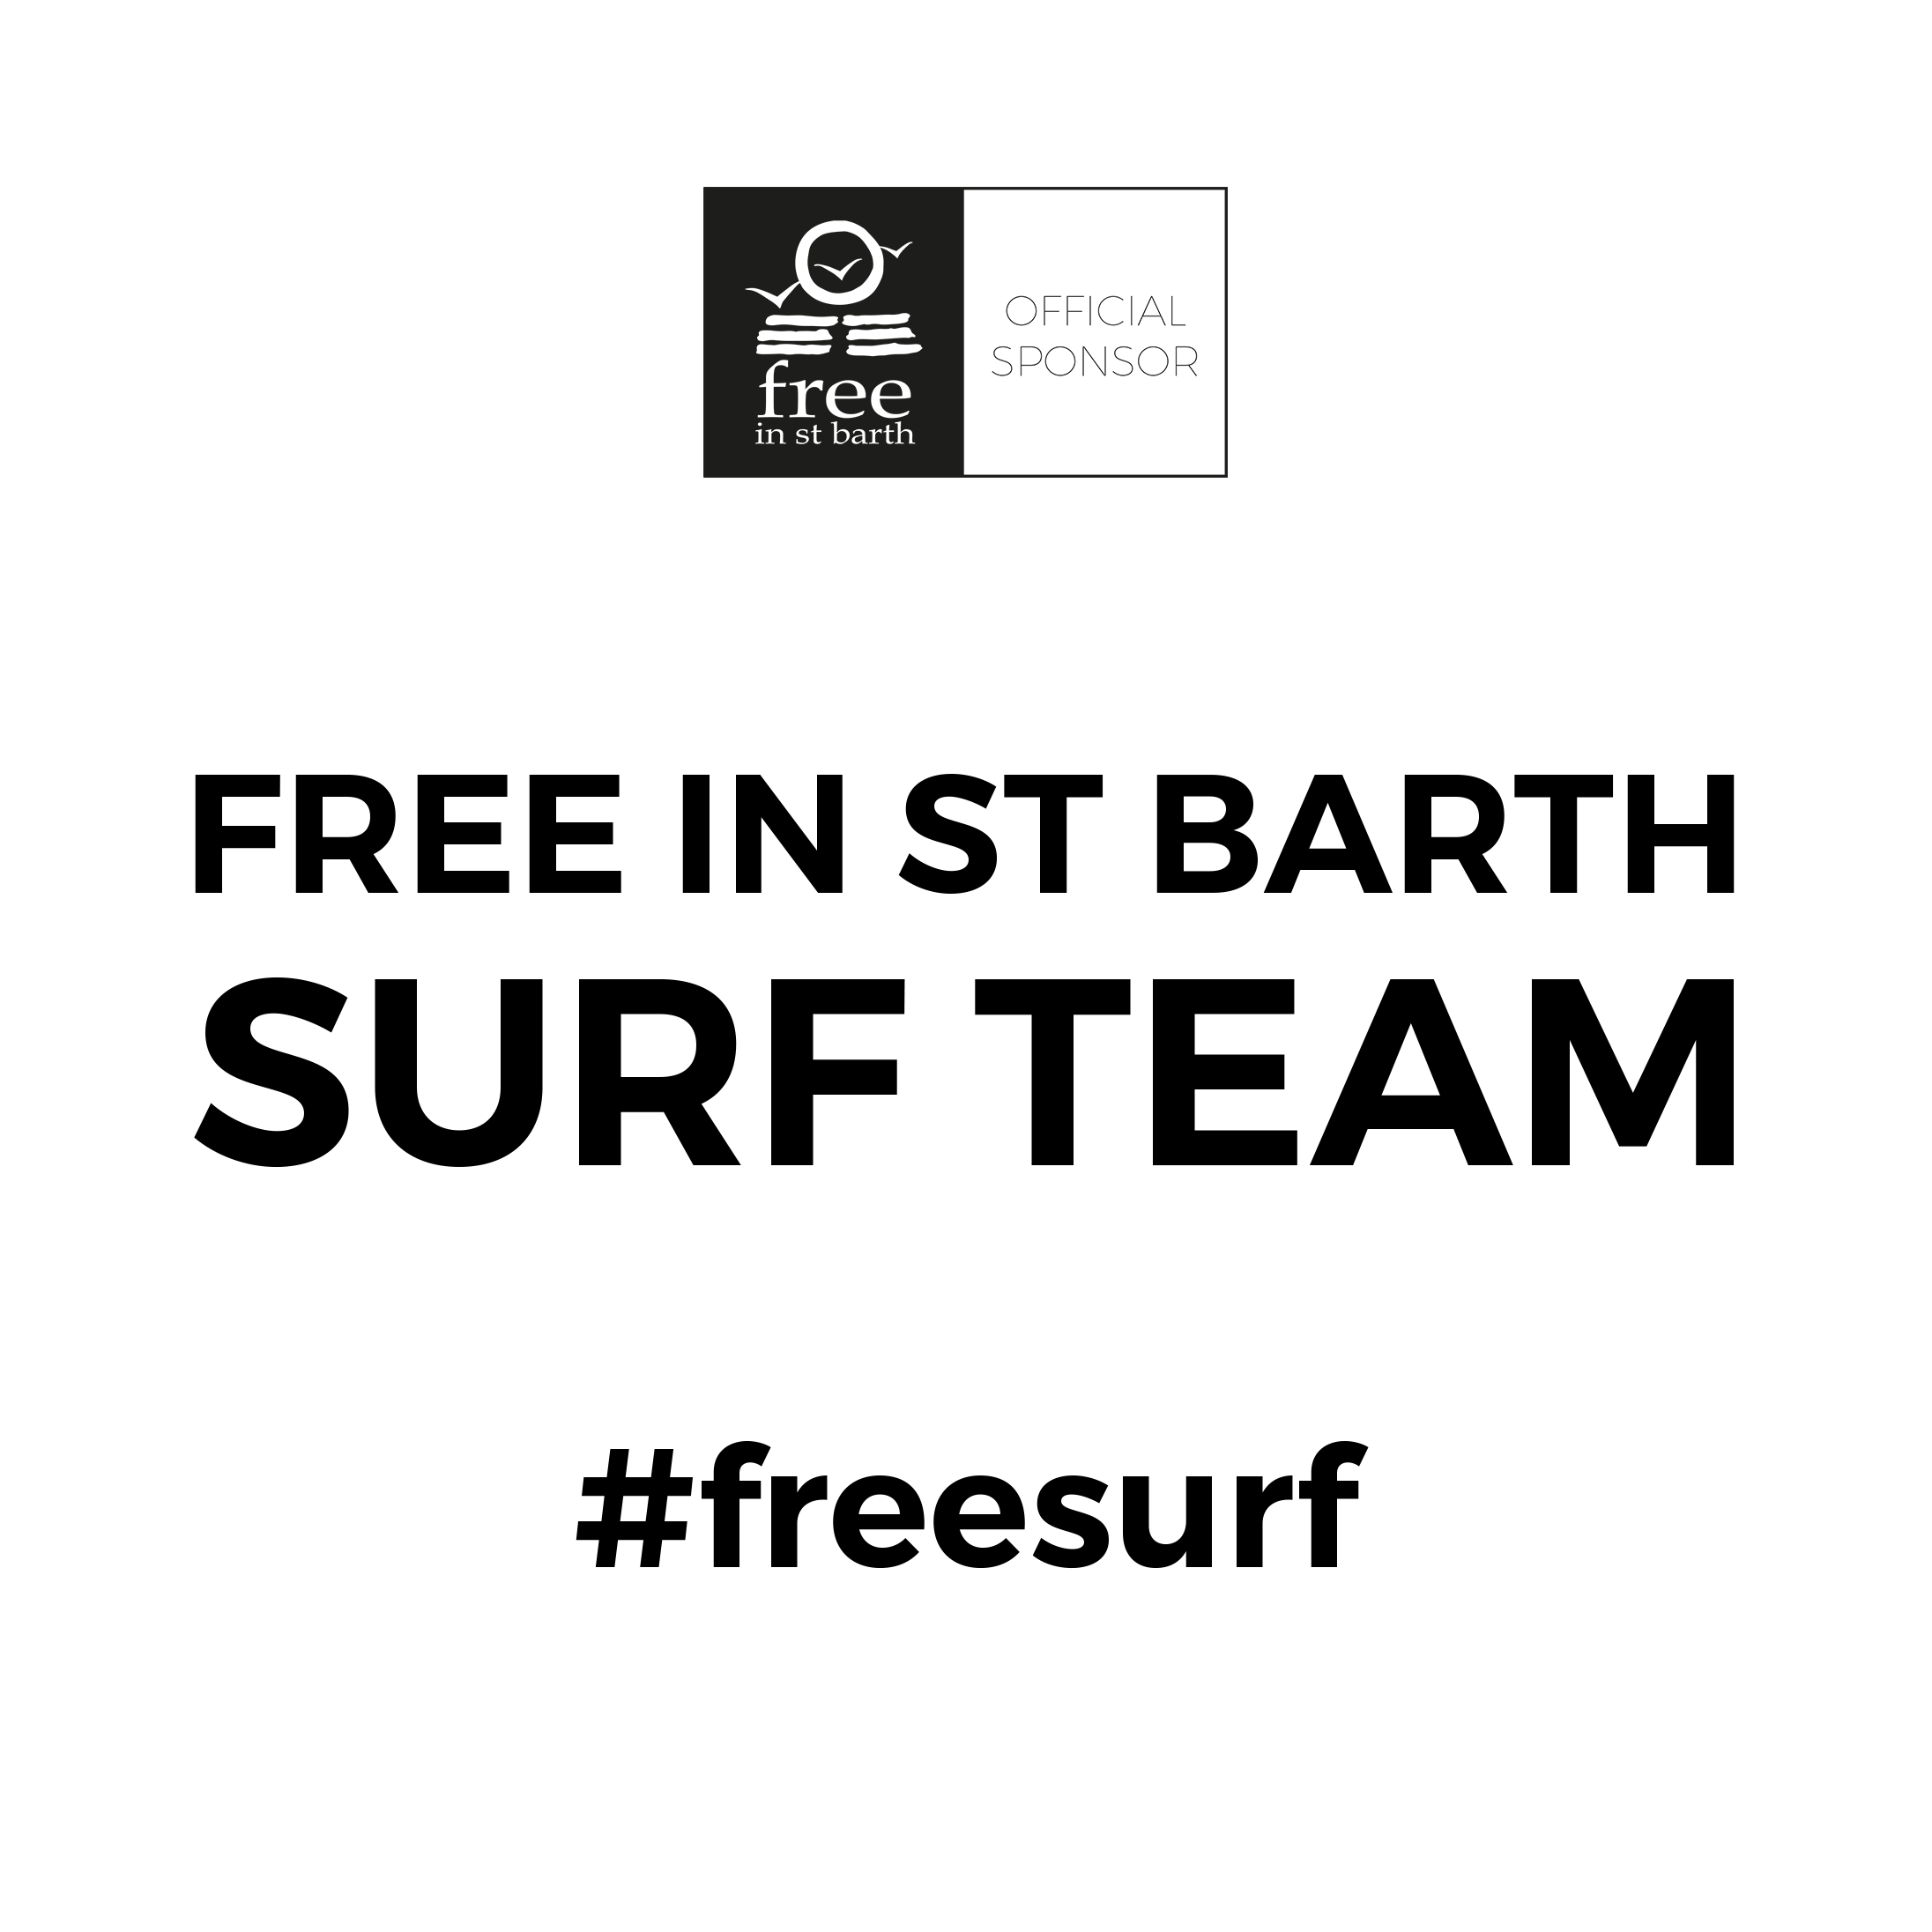 st barth surf team with Tessa Thyssen & Dimitri Ouvré